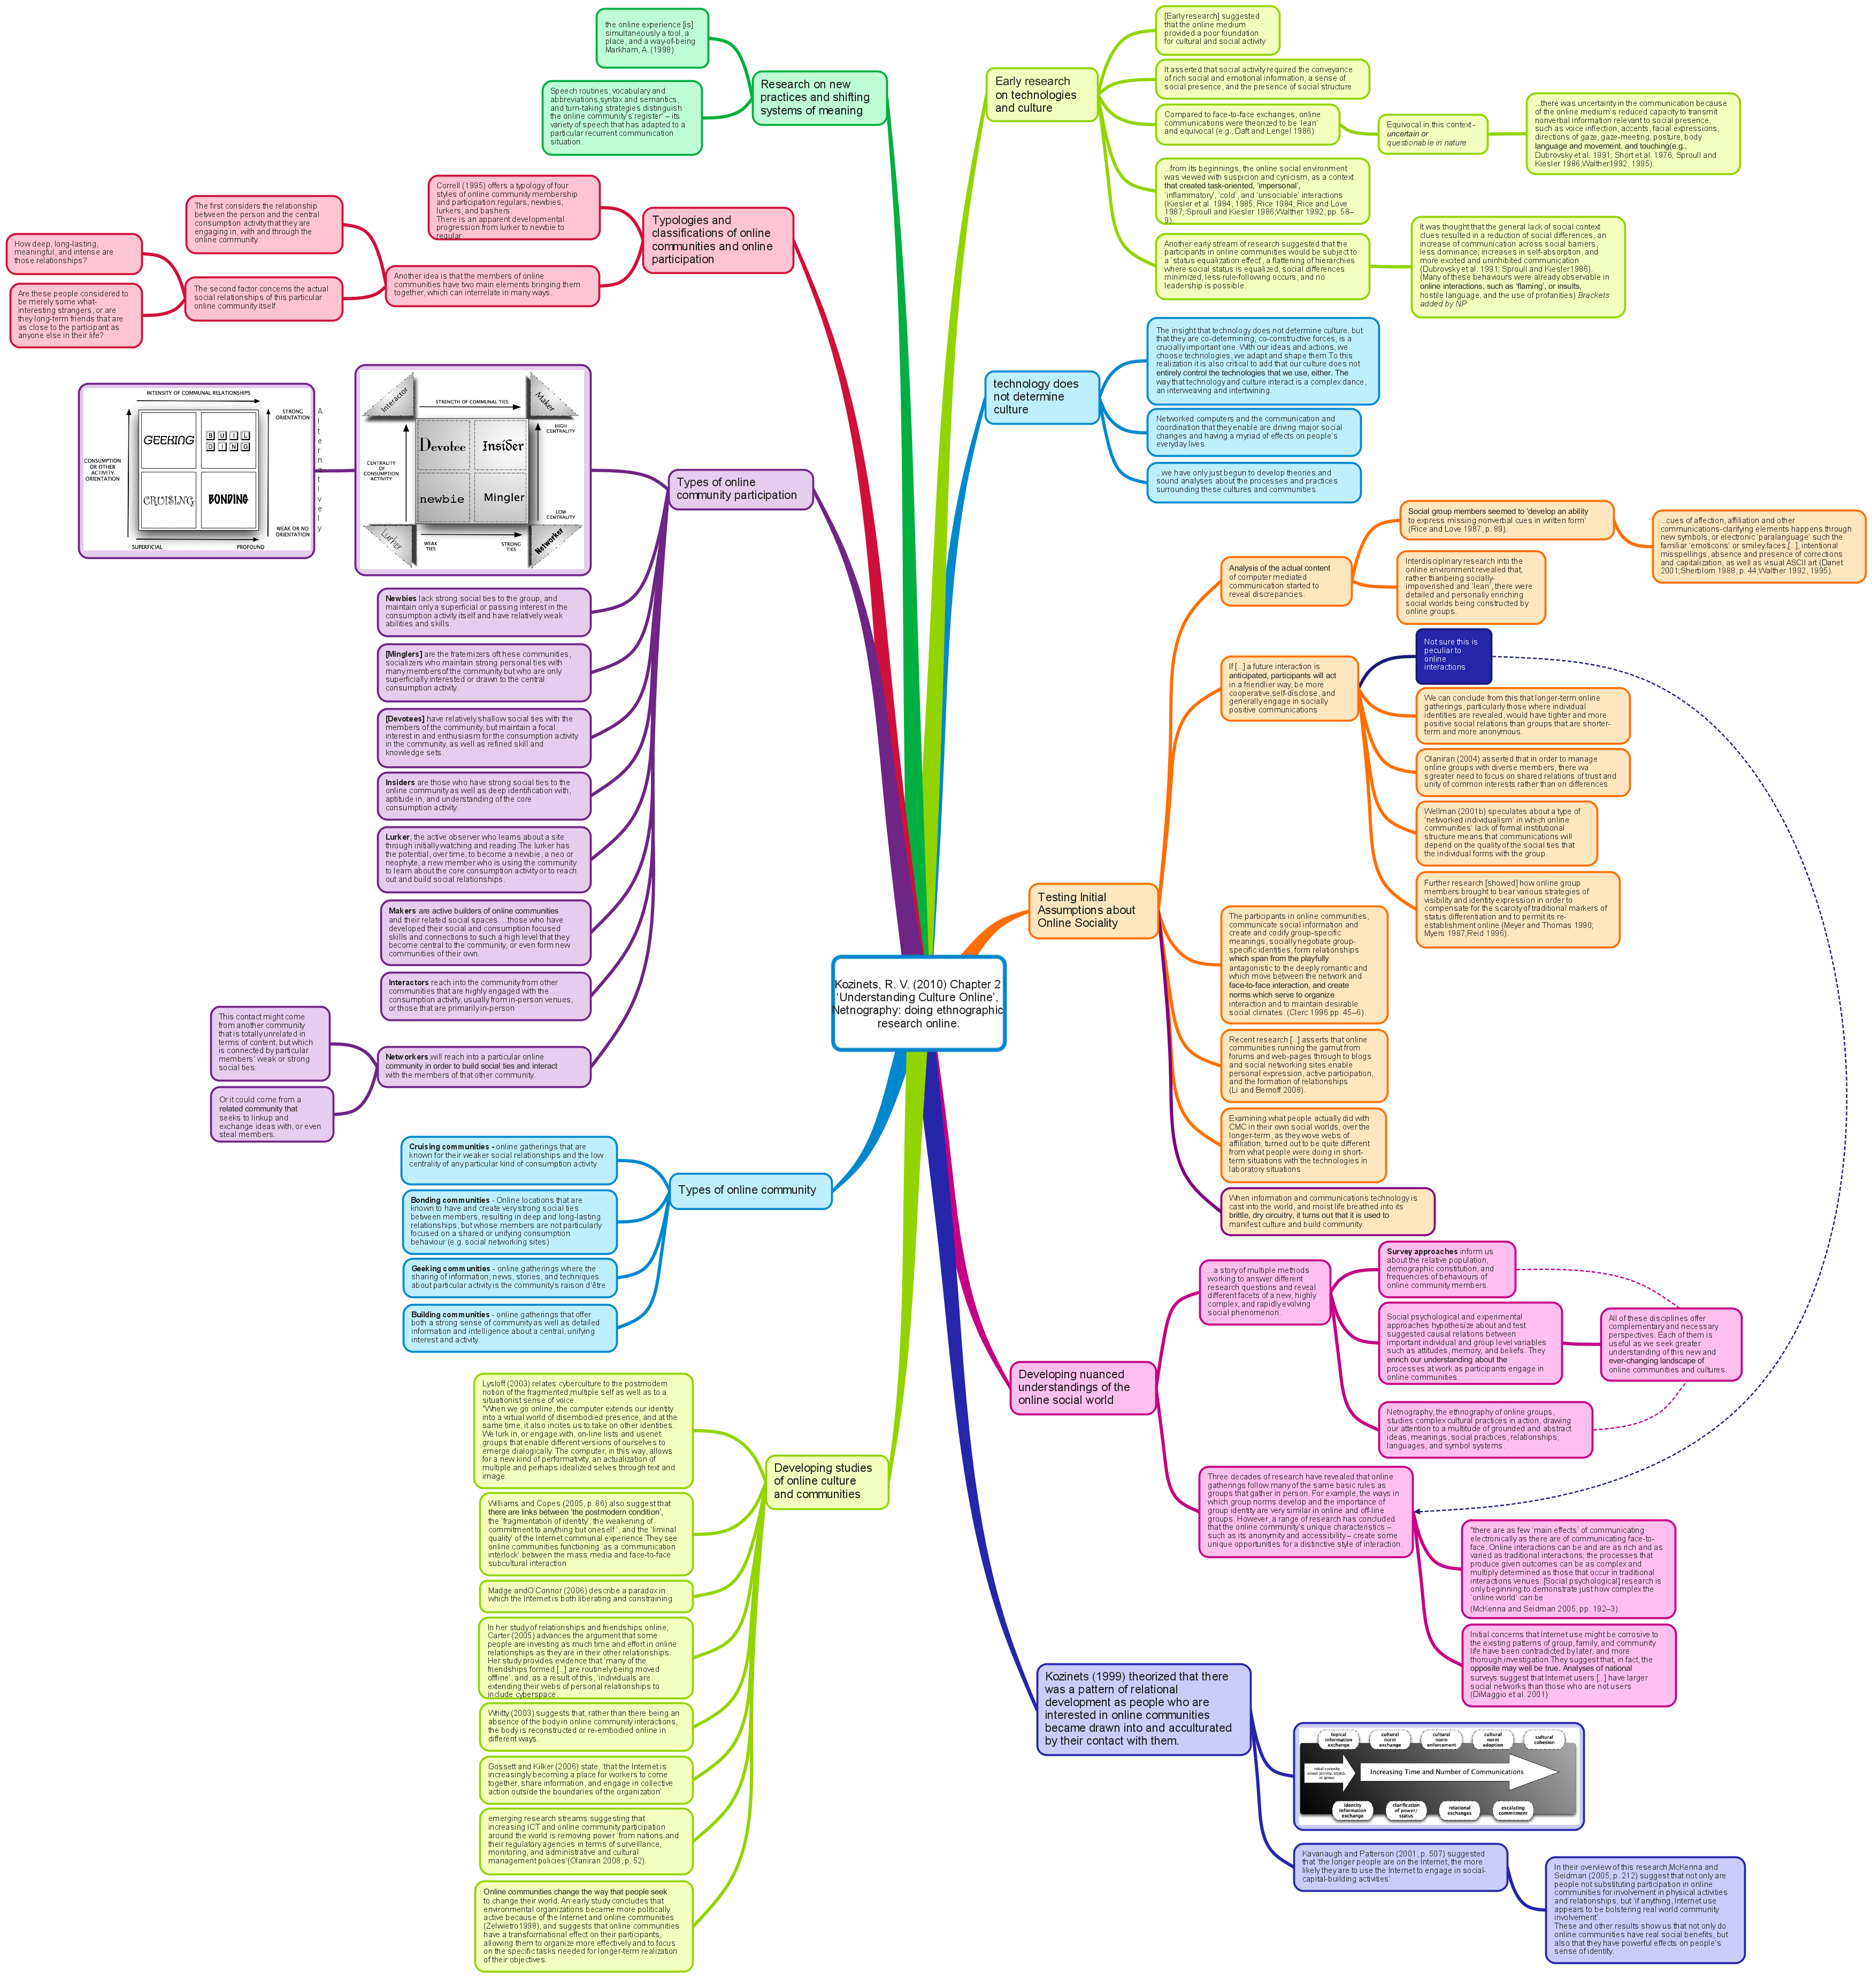 Mindmap deconstruction of Kozinets, R. V. (2010) Chapter 2 'Understanding Culture Online', Netnography doing ethnographic research online.